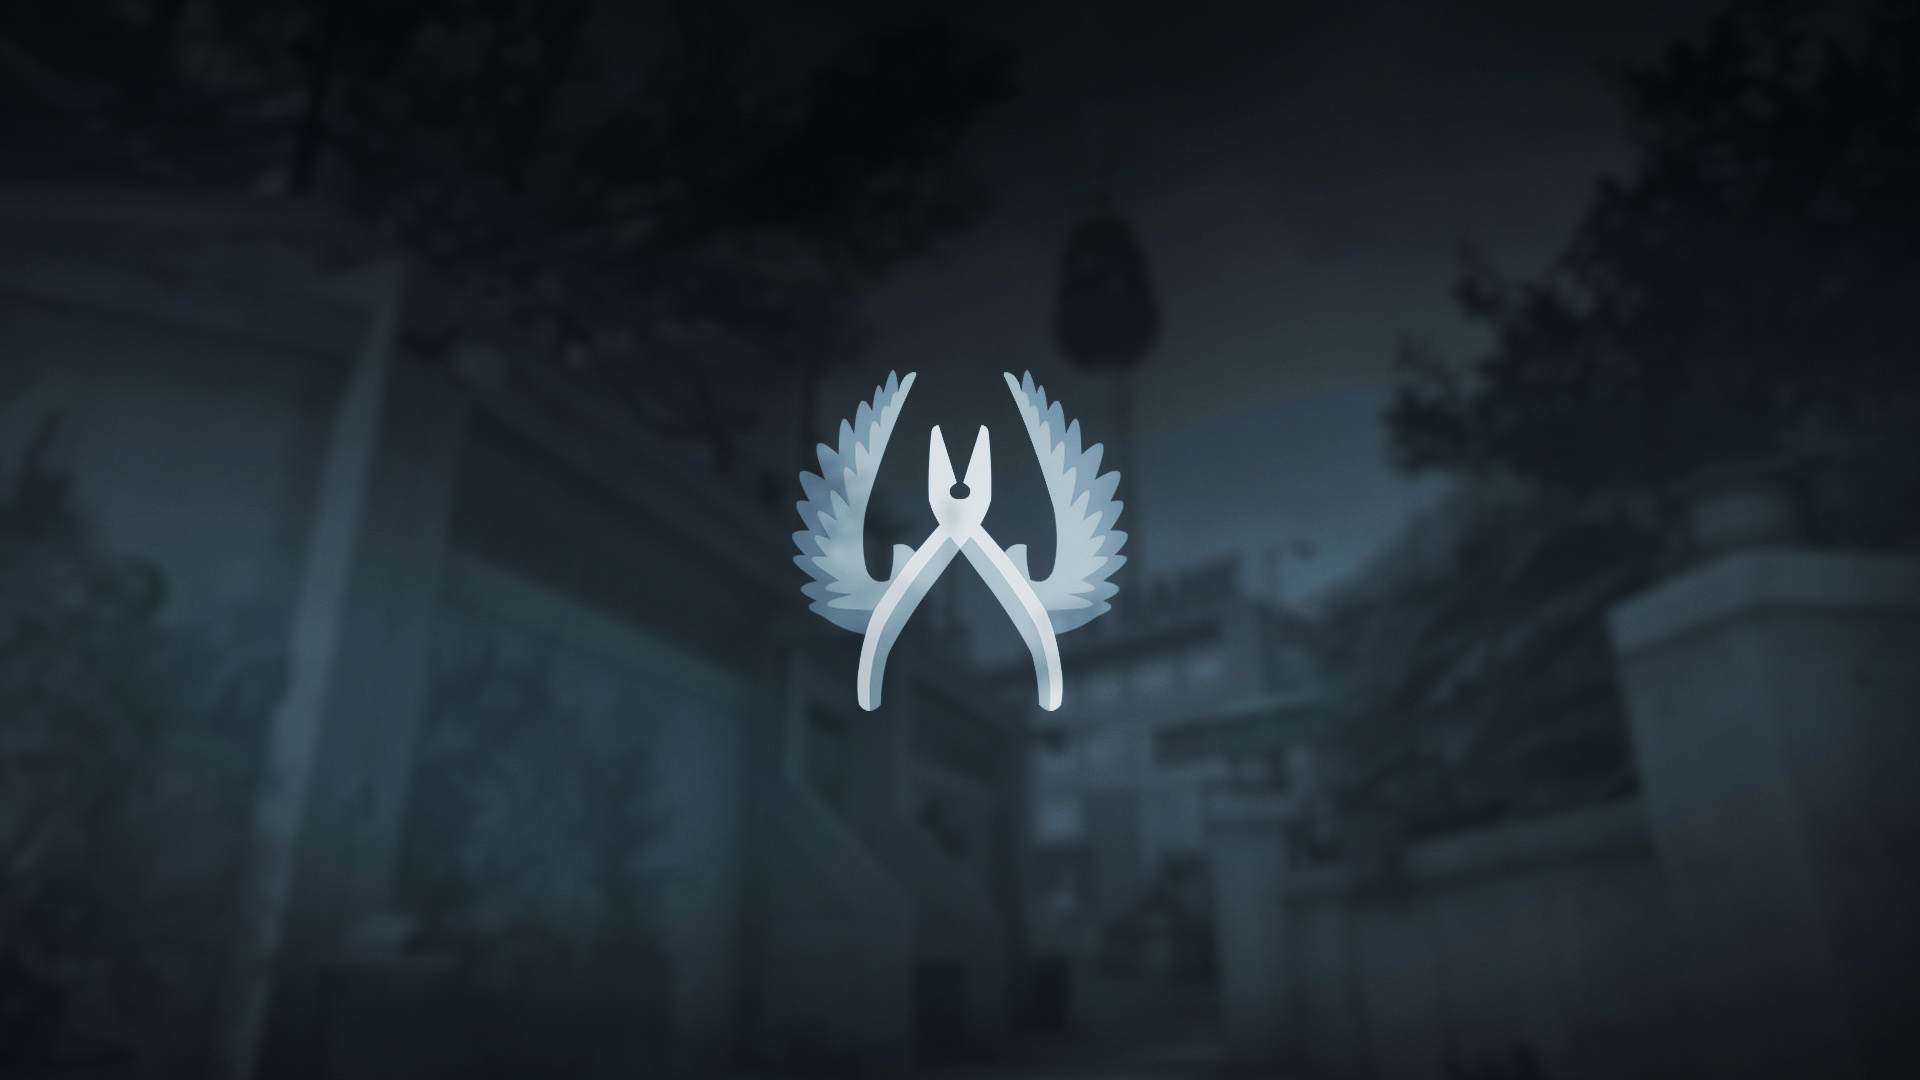 CS:GO Wallpapers And Backgrounds